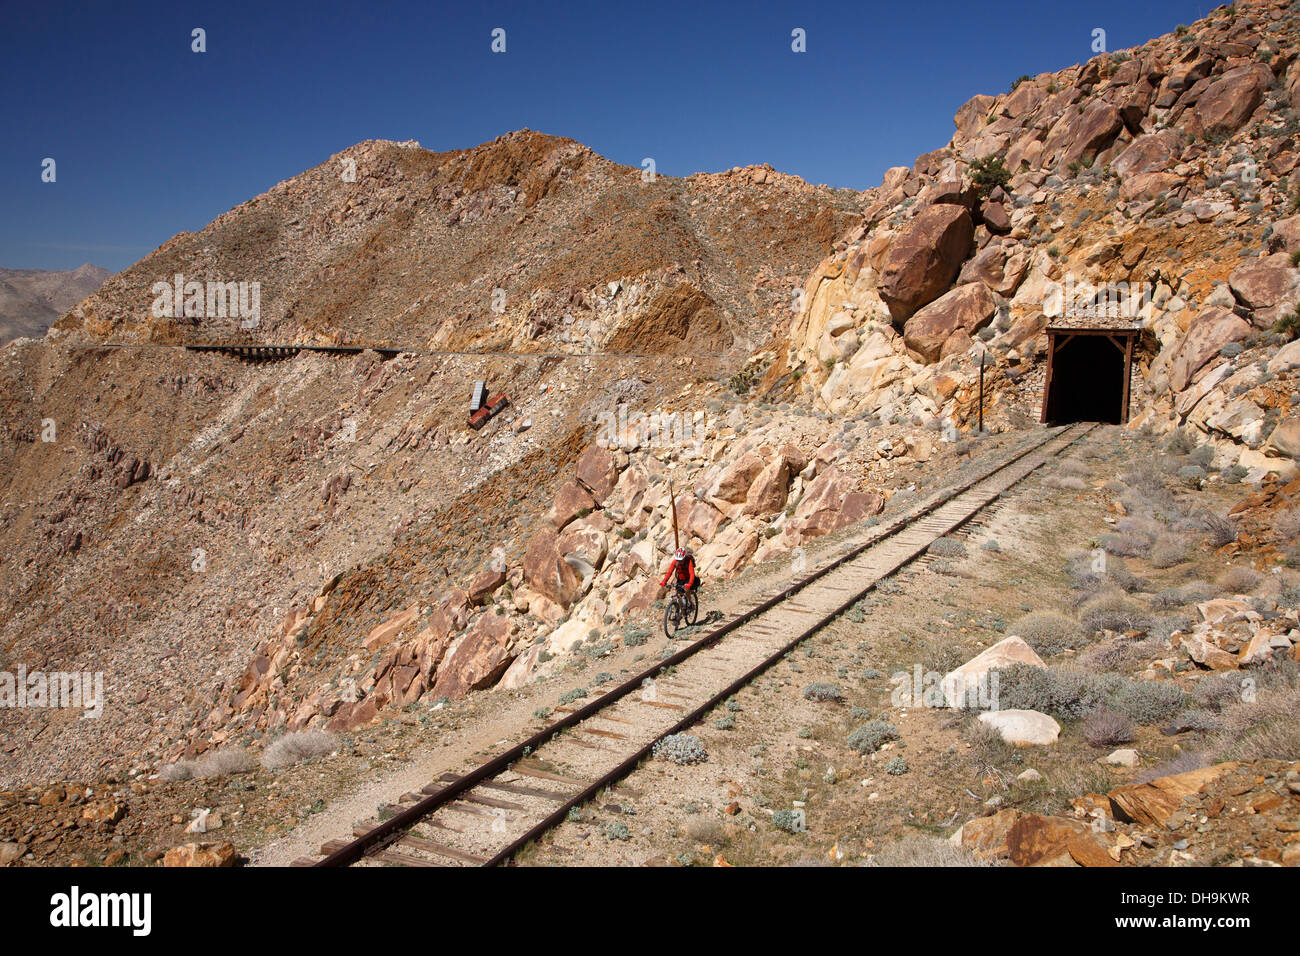 Mountain Biking The Carrizo Gorge Railroad Track Anza Borrego